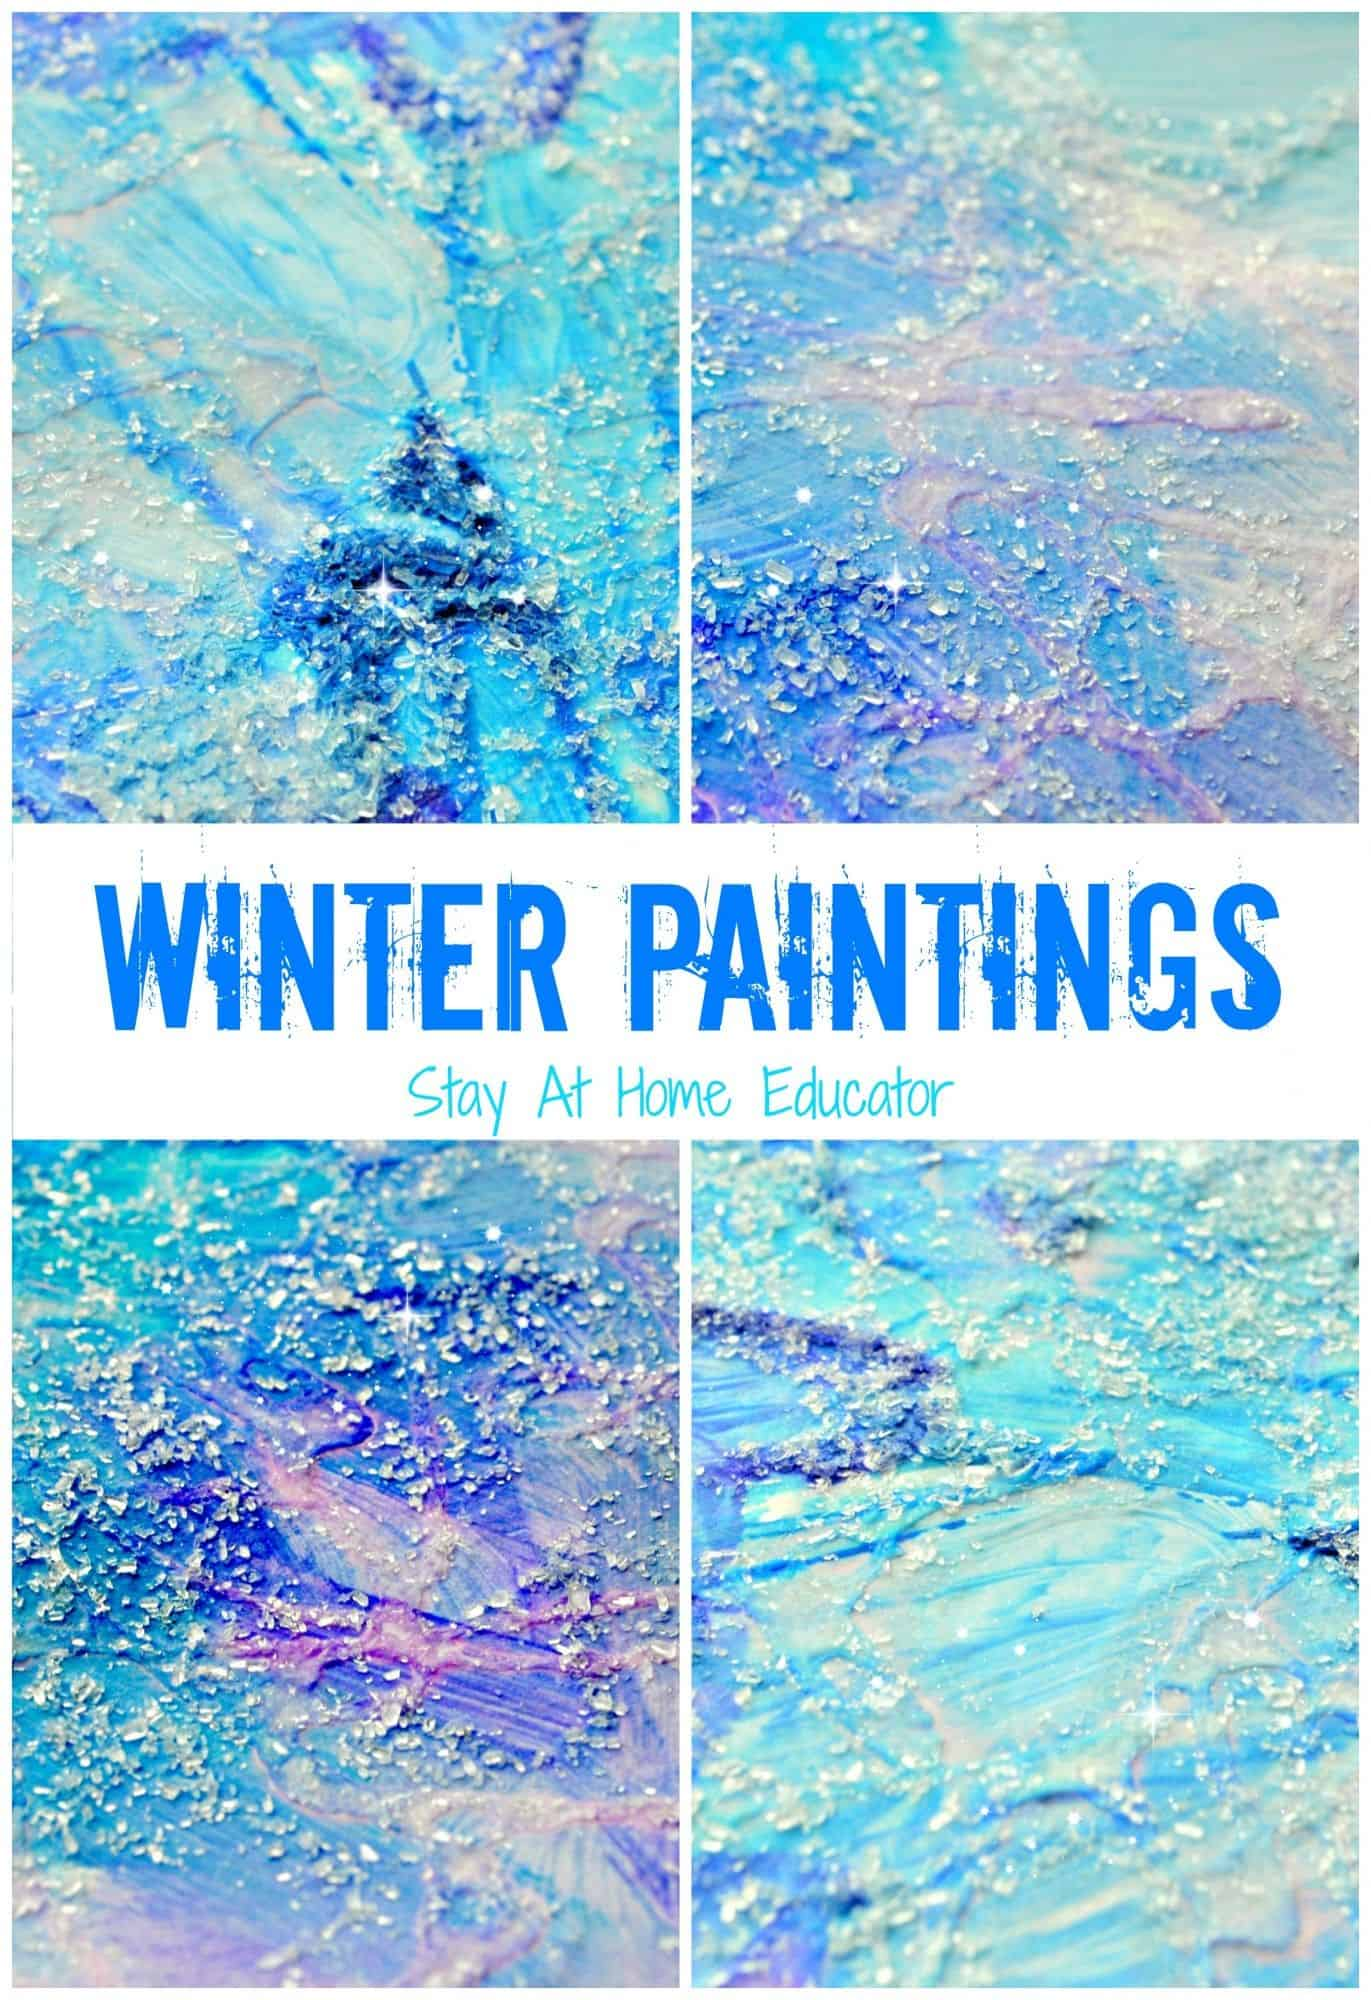 Sparkly winter paitnings